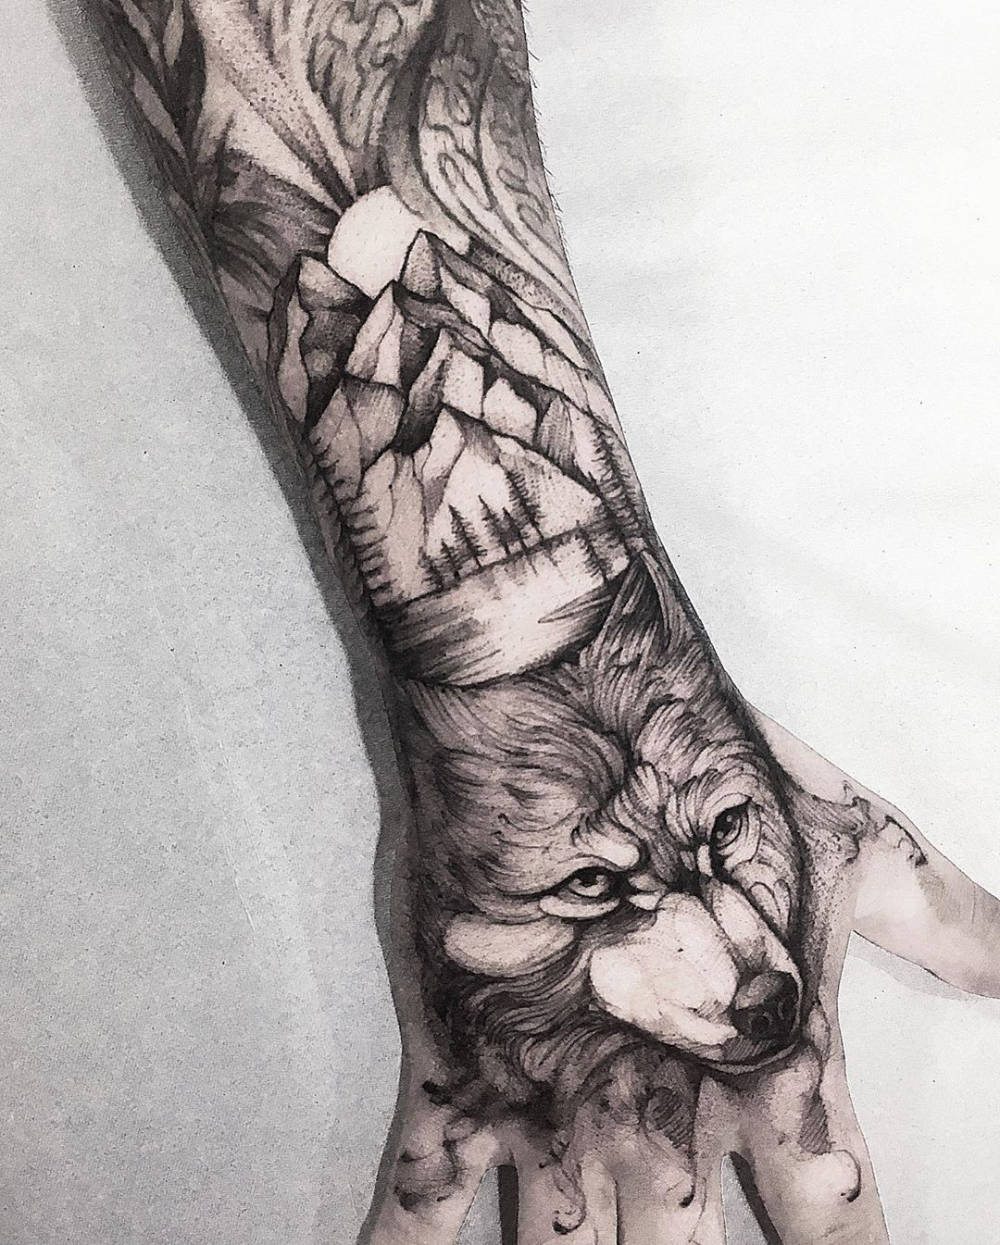 Sketch style hand & forearm tattoo